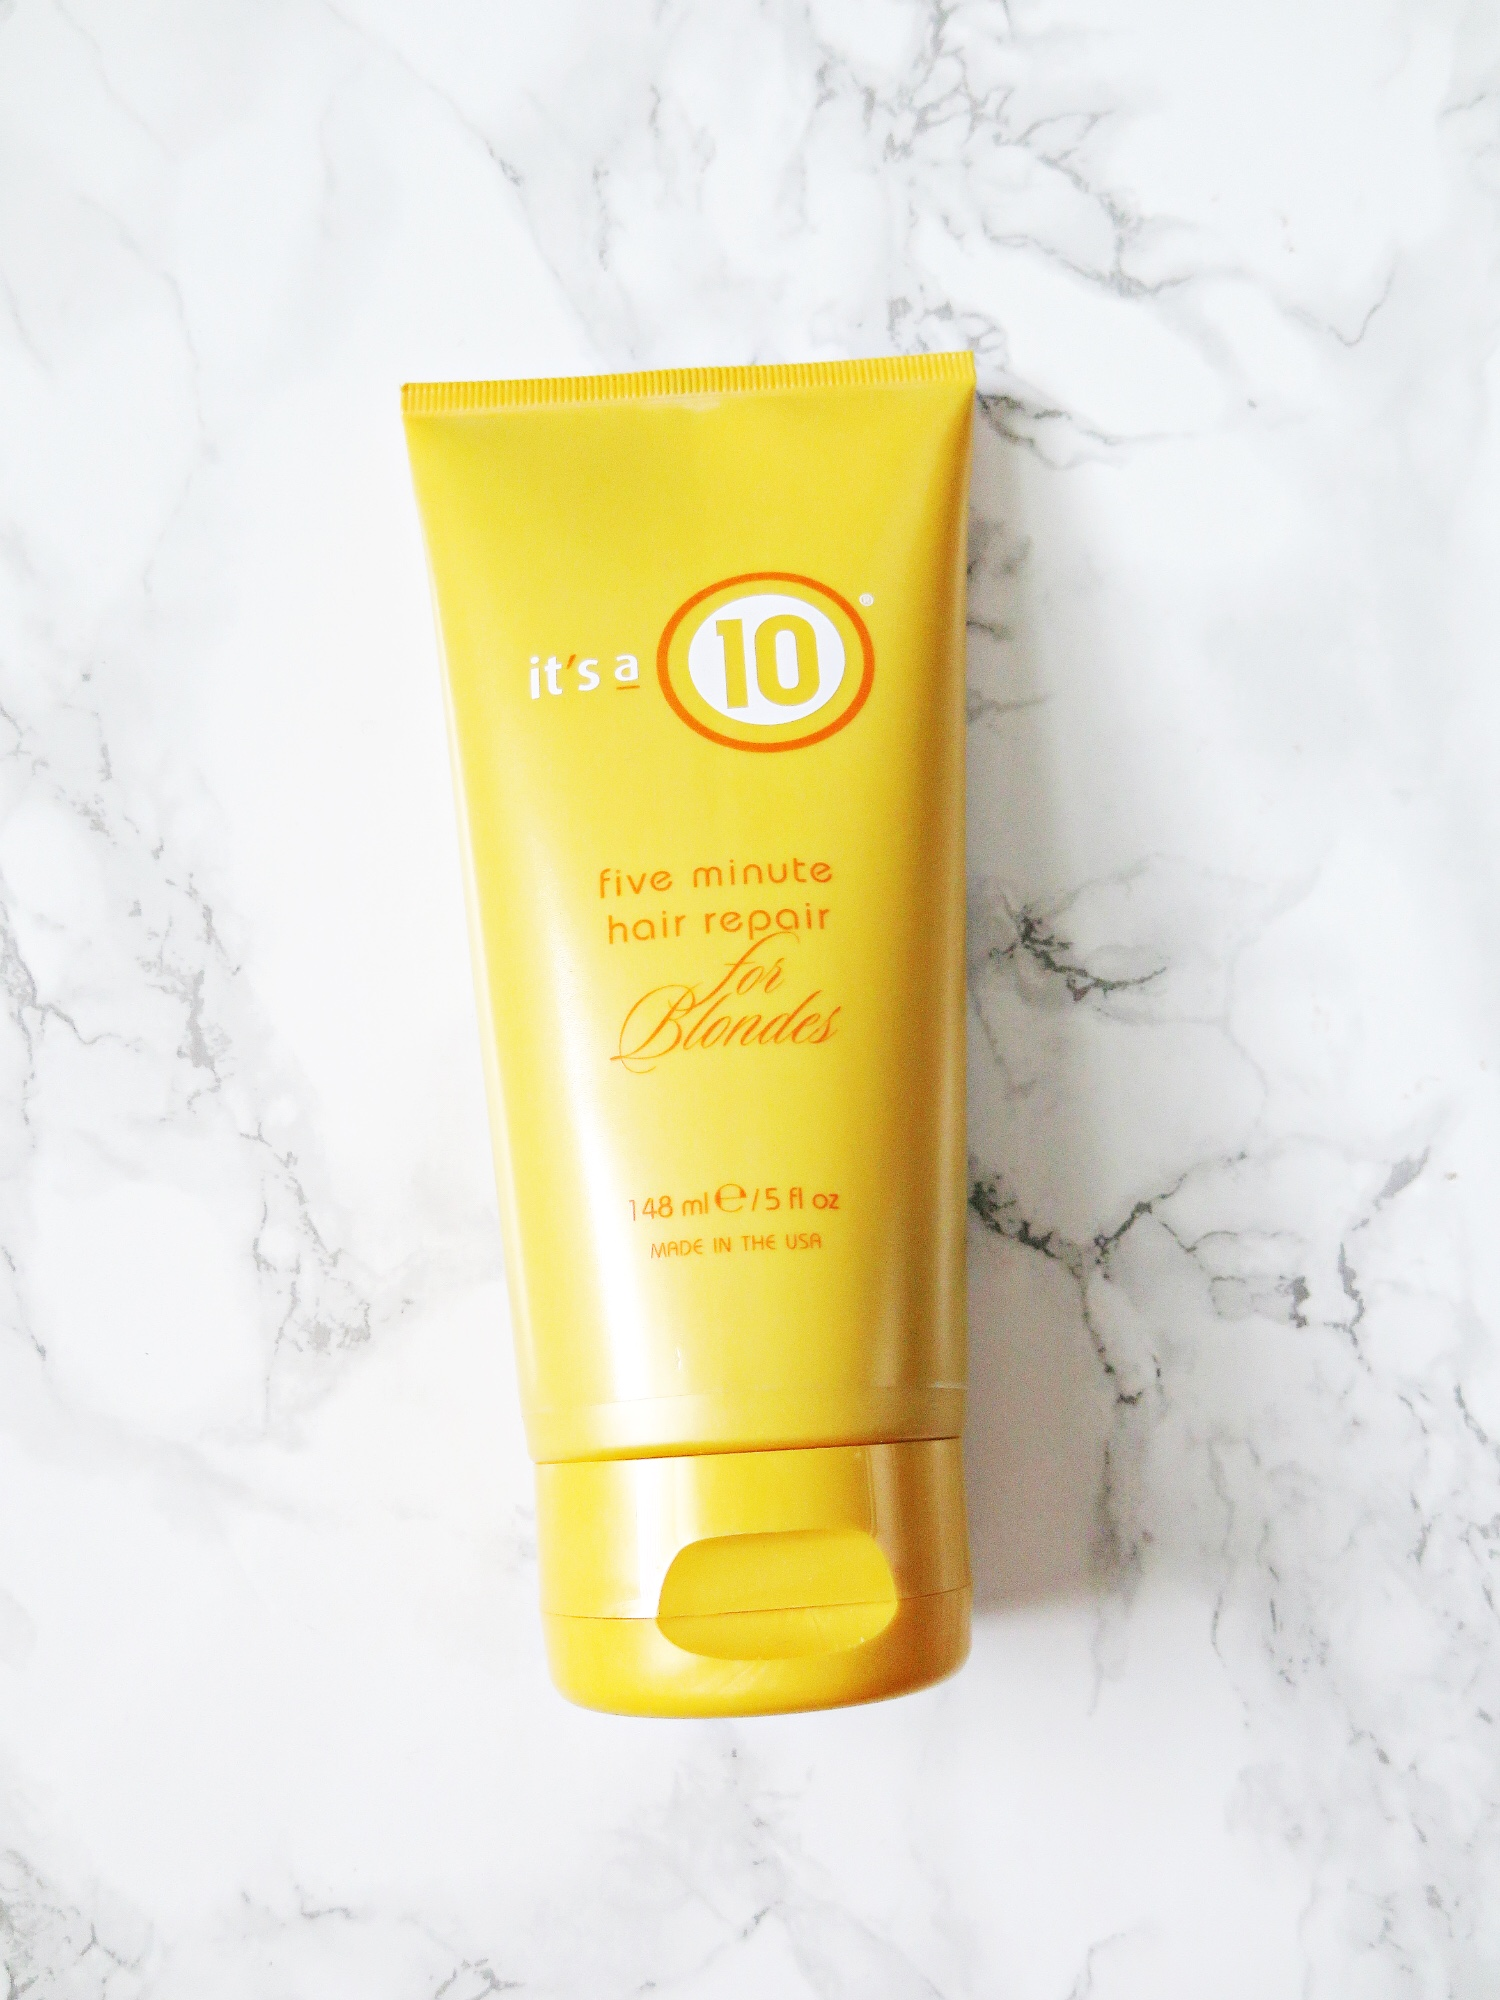 Five Minute Hair Repair For Blondes by It's A 10 #9